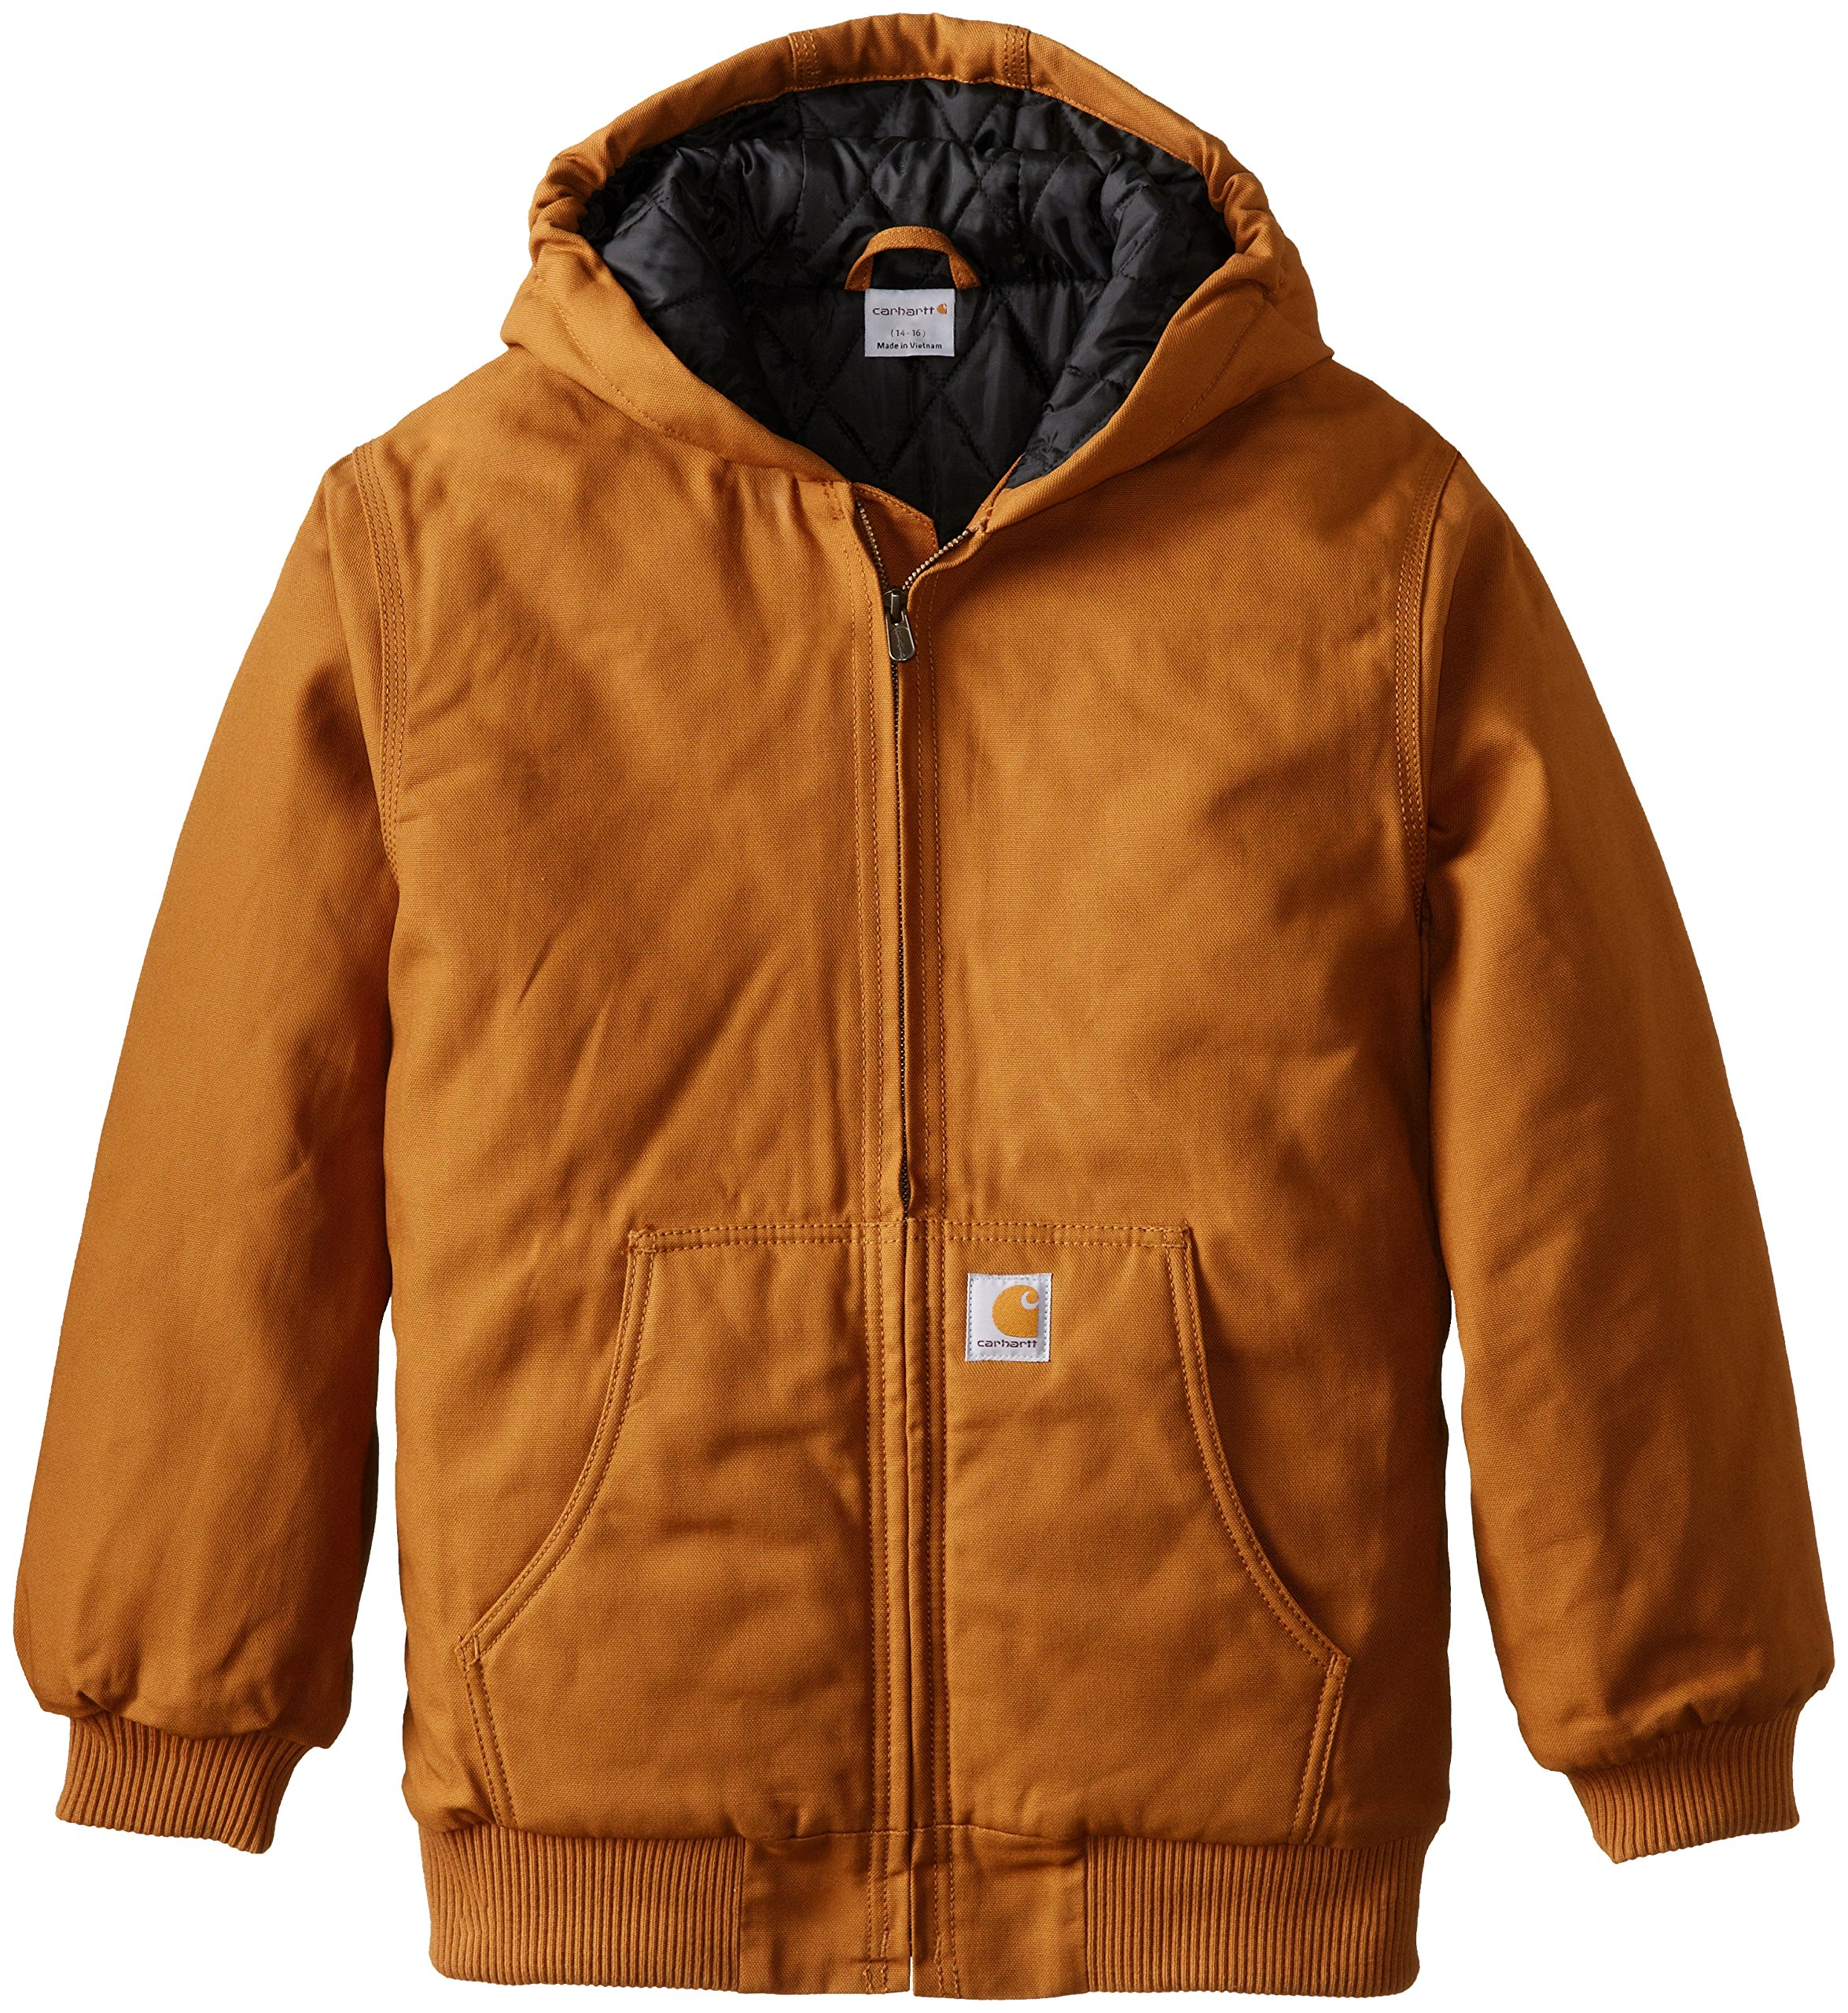 Carhartt Big Boys' Work Active Jacket, Carhartt Brown, Small/7/8 by Carhartt